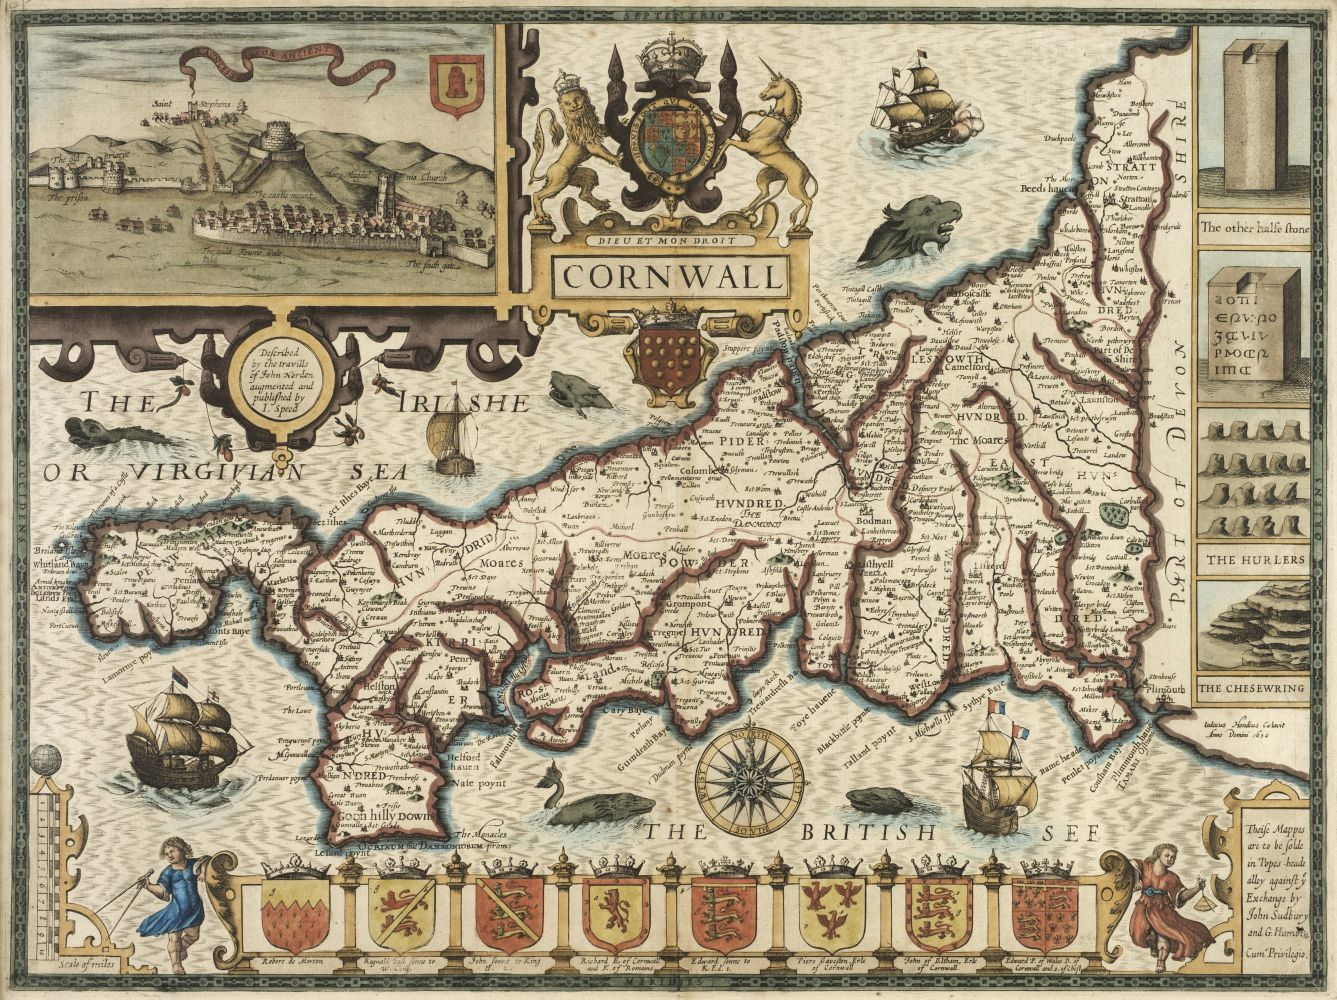 * Cornwall. Speed (John), Cornwall, John Sudbury & George Humble, circa 1627